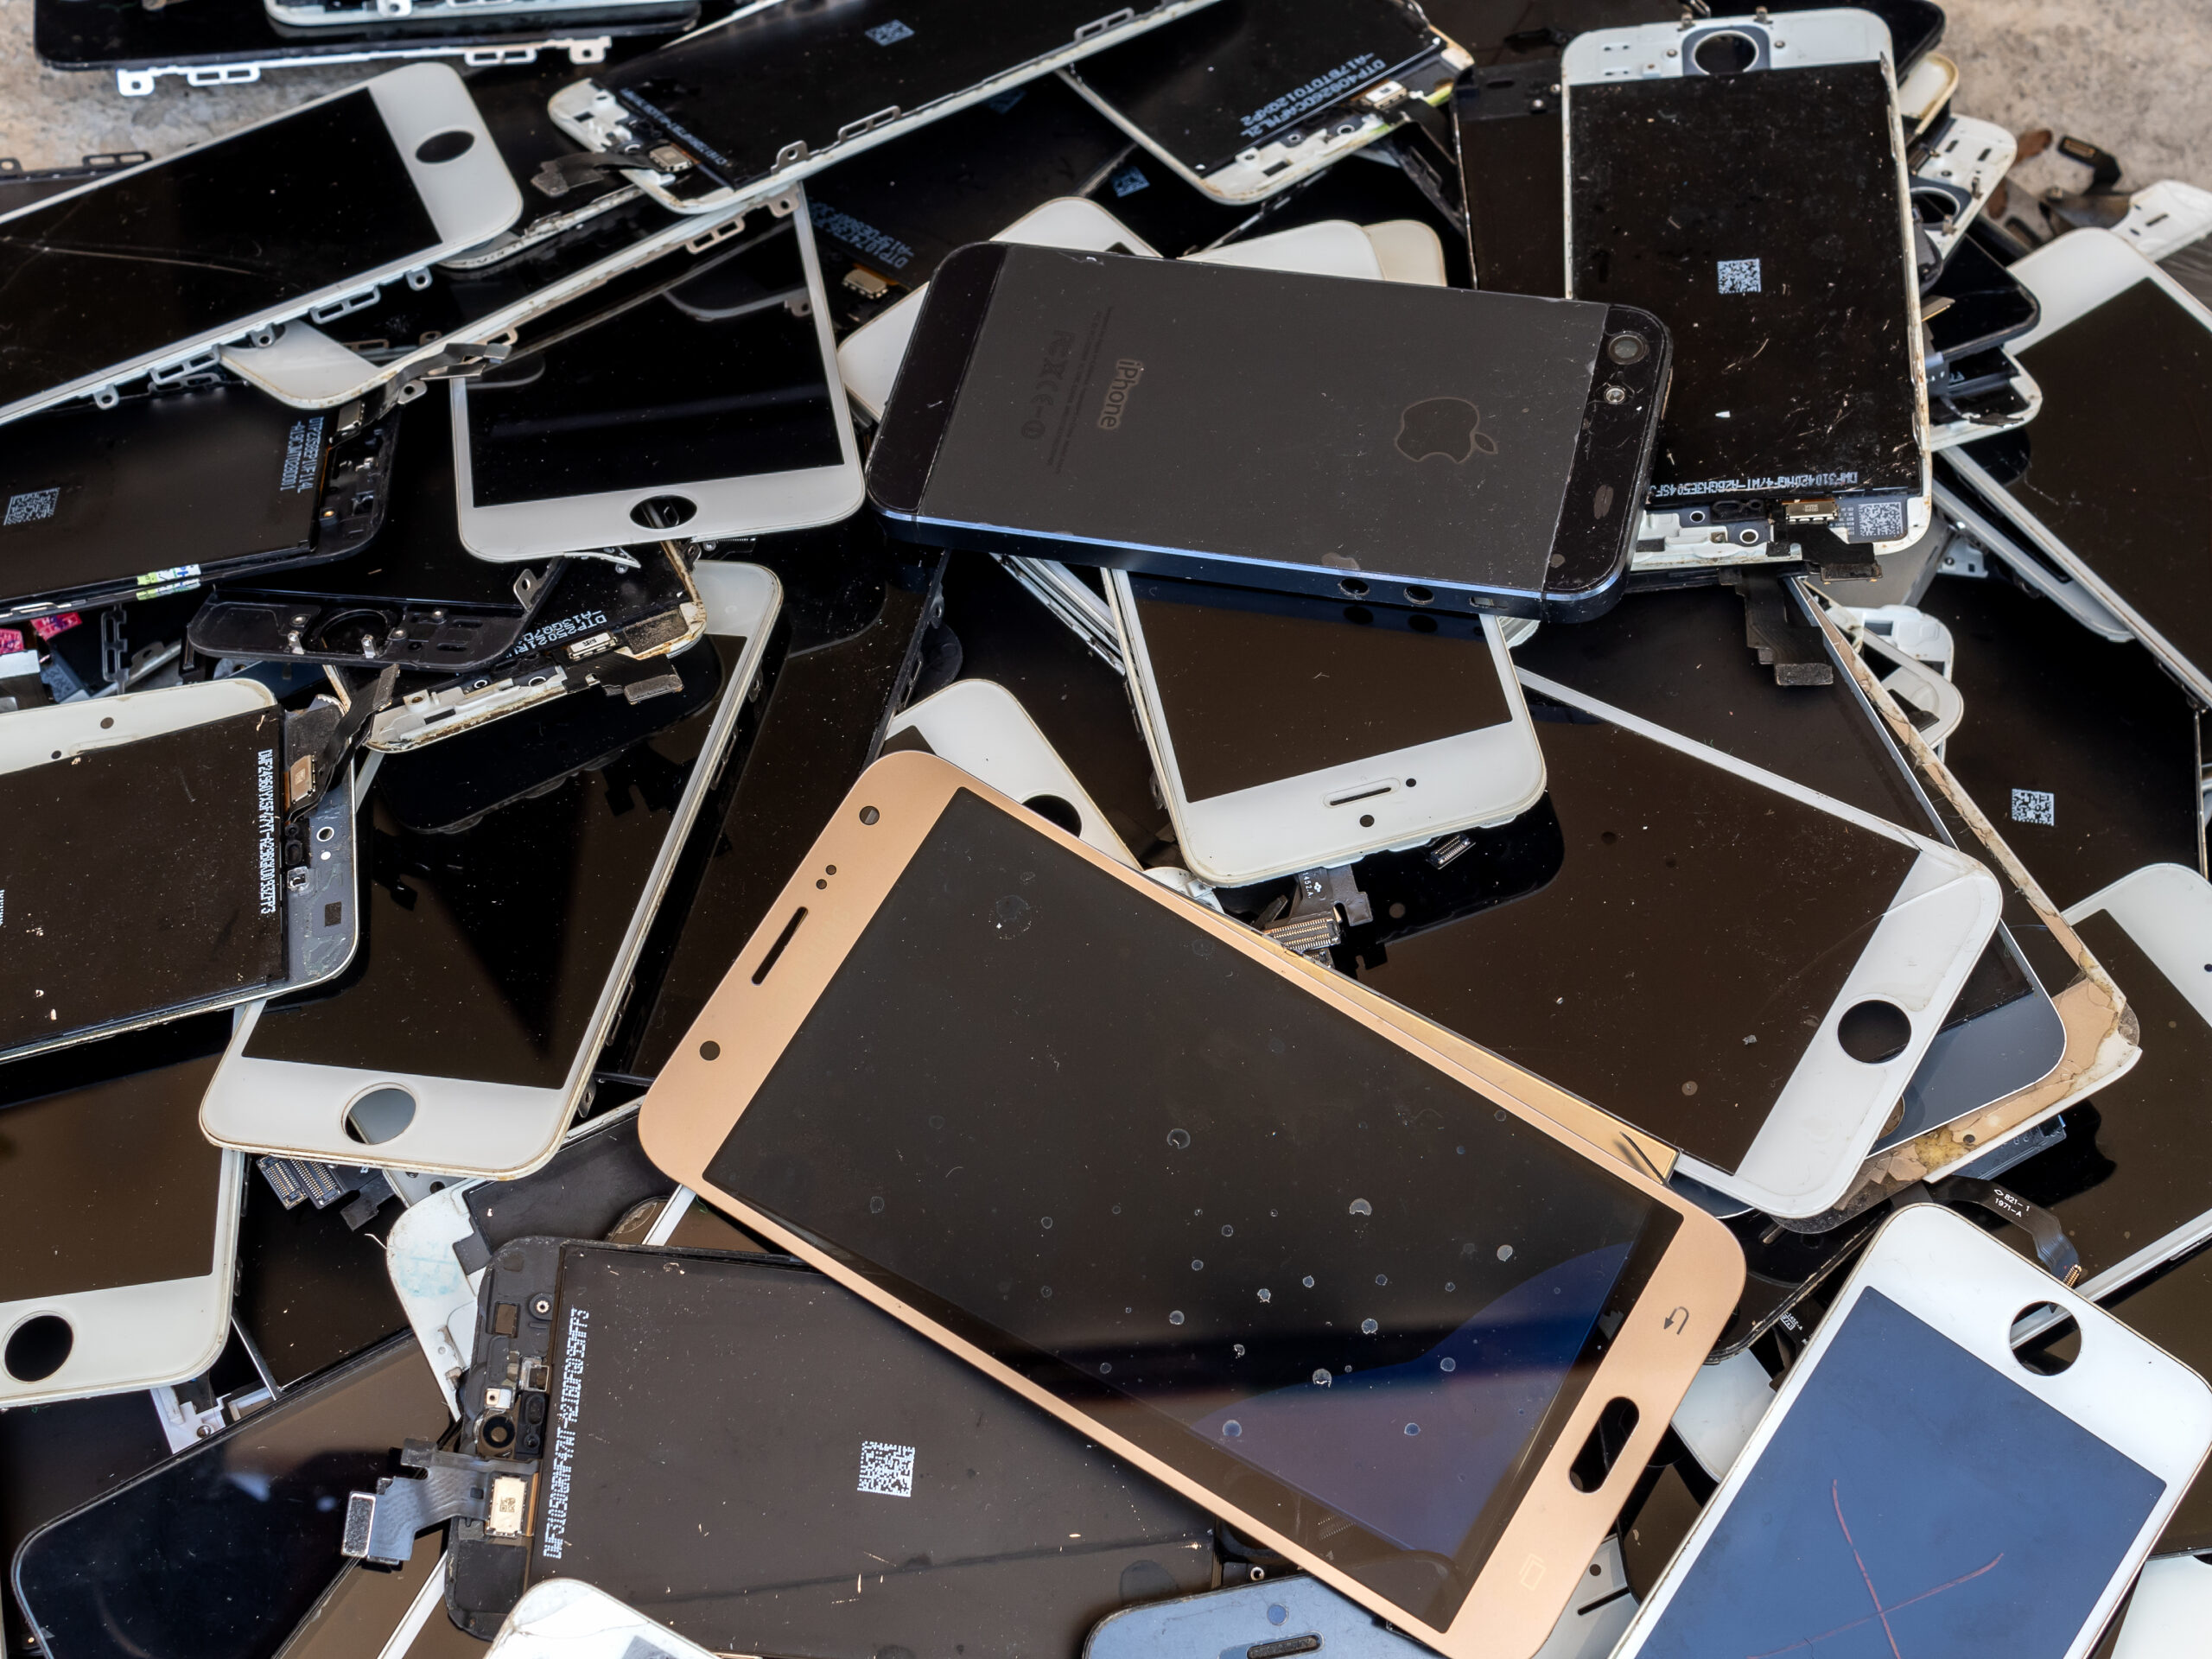 UK households generate second highest level of e-waste in Europe